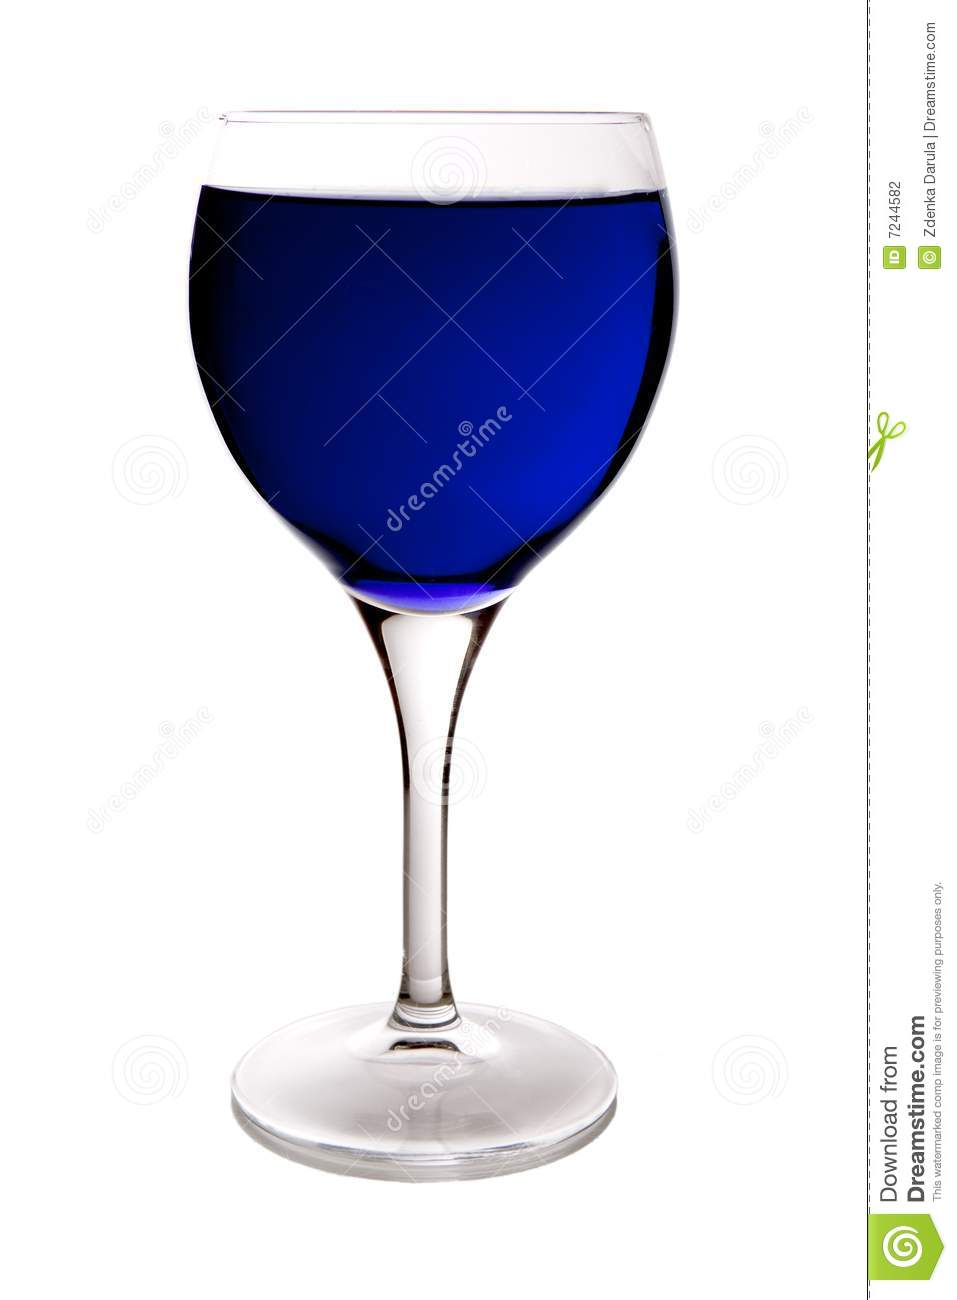 Wine Glasses Blue Wine Glass Stock Photography - Image: 7244582